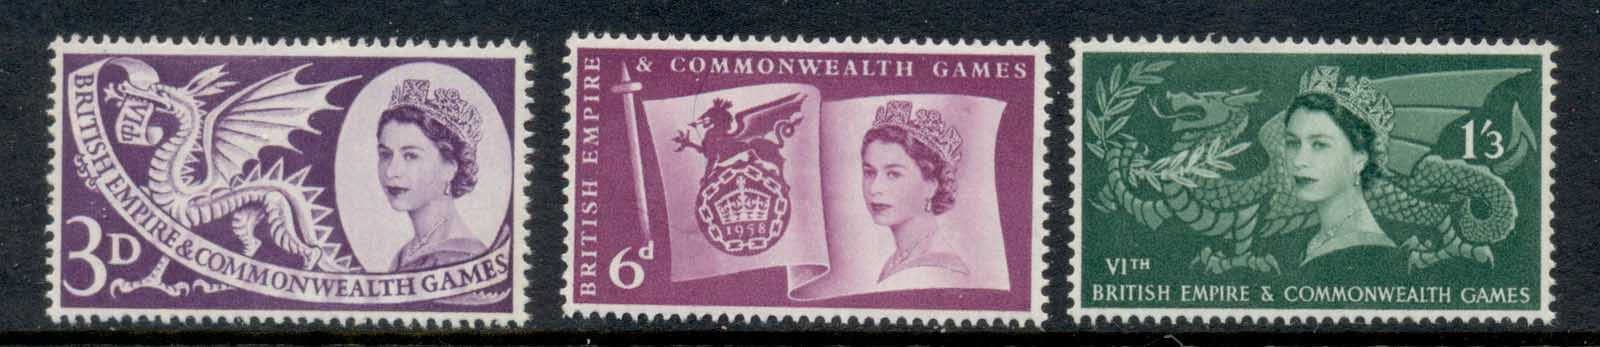 GB 1958 Empire & Commonwealth Games MLH